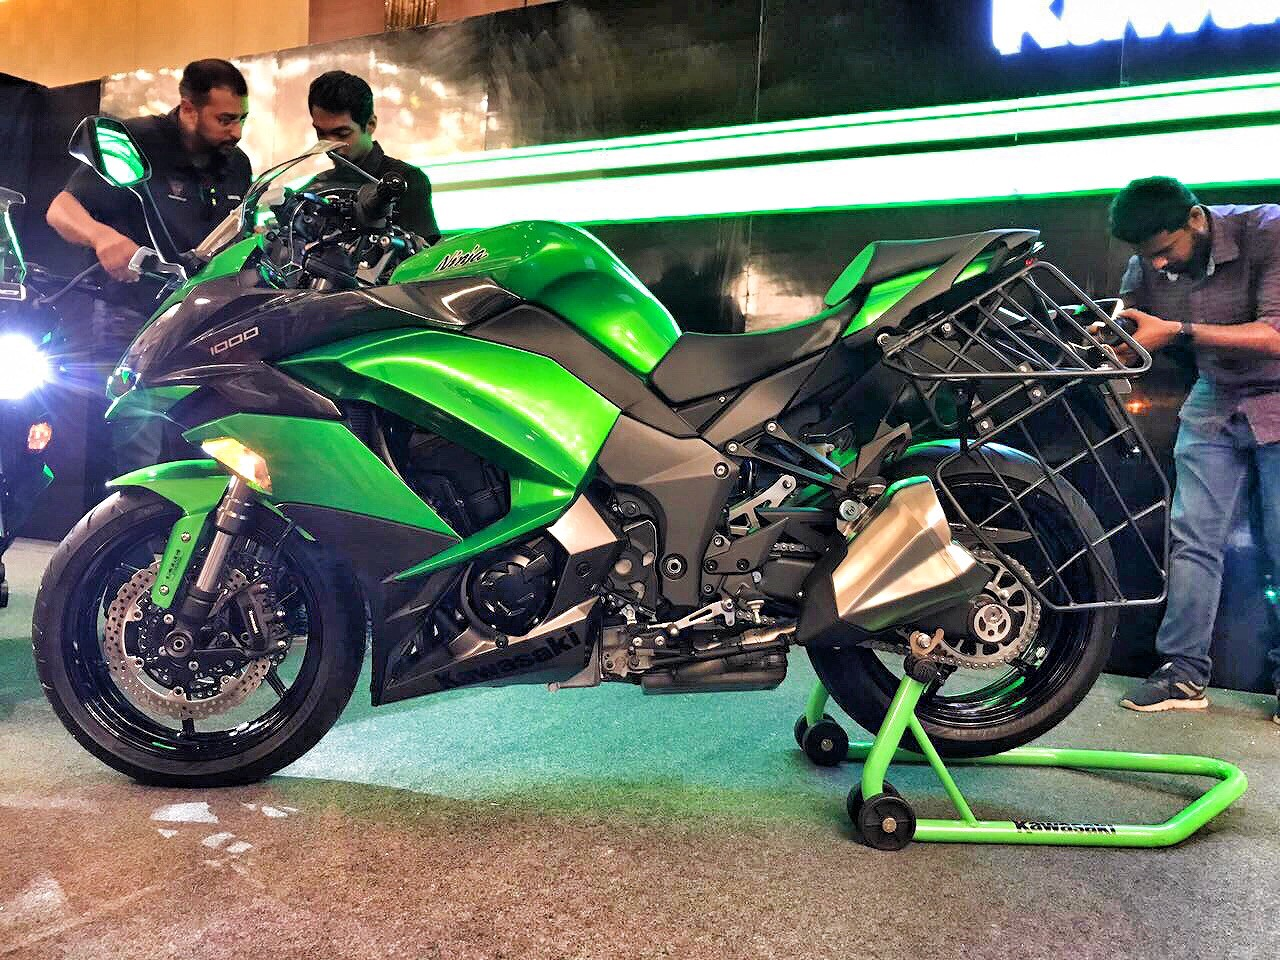 Kawasaki Launches 2017 Ninja 1000 At An Insane 998 Lac